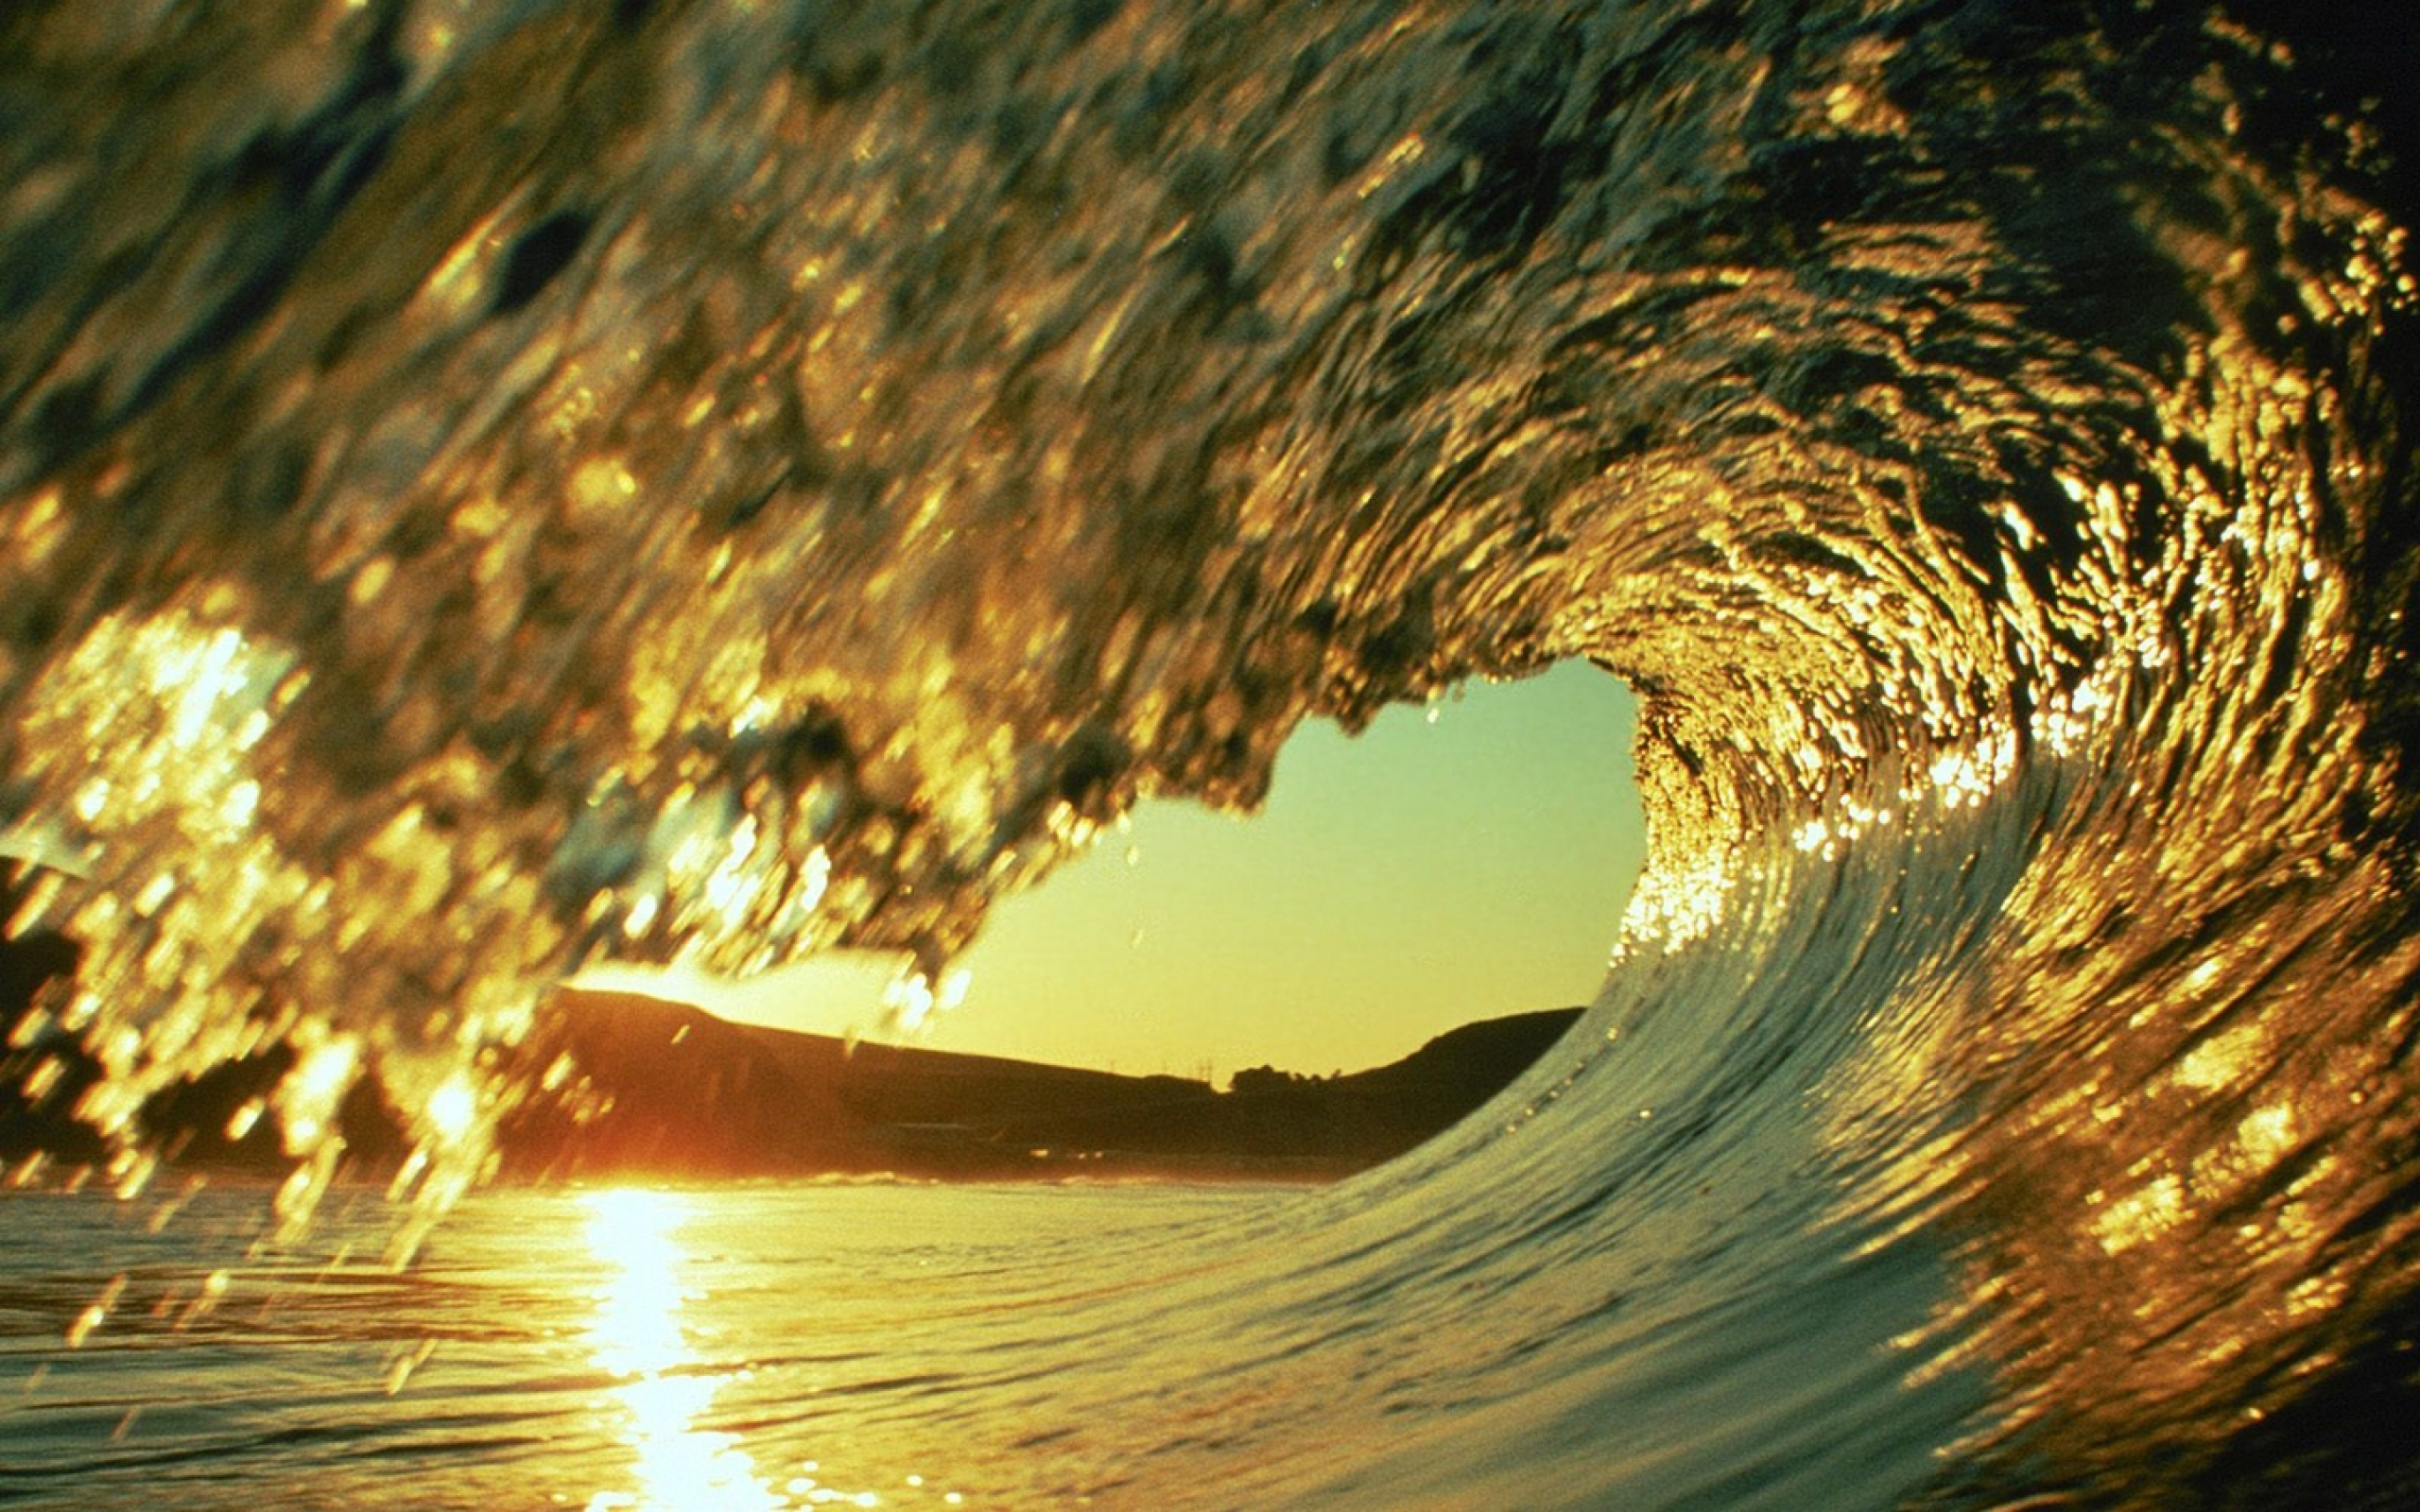 Clark Little Waves X 2606615 With Resolutions 25601600 Pixel 2560x1600